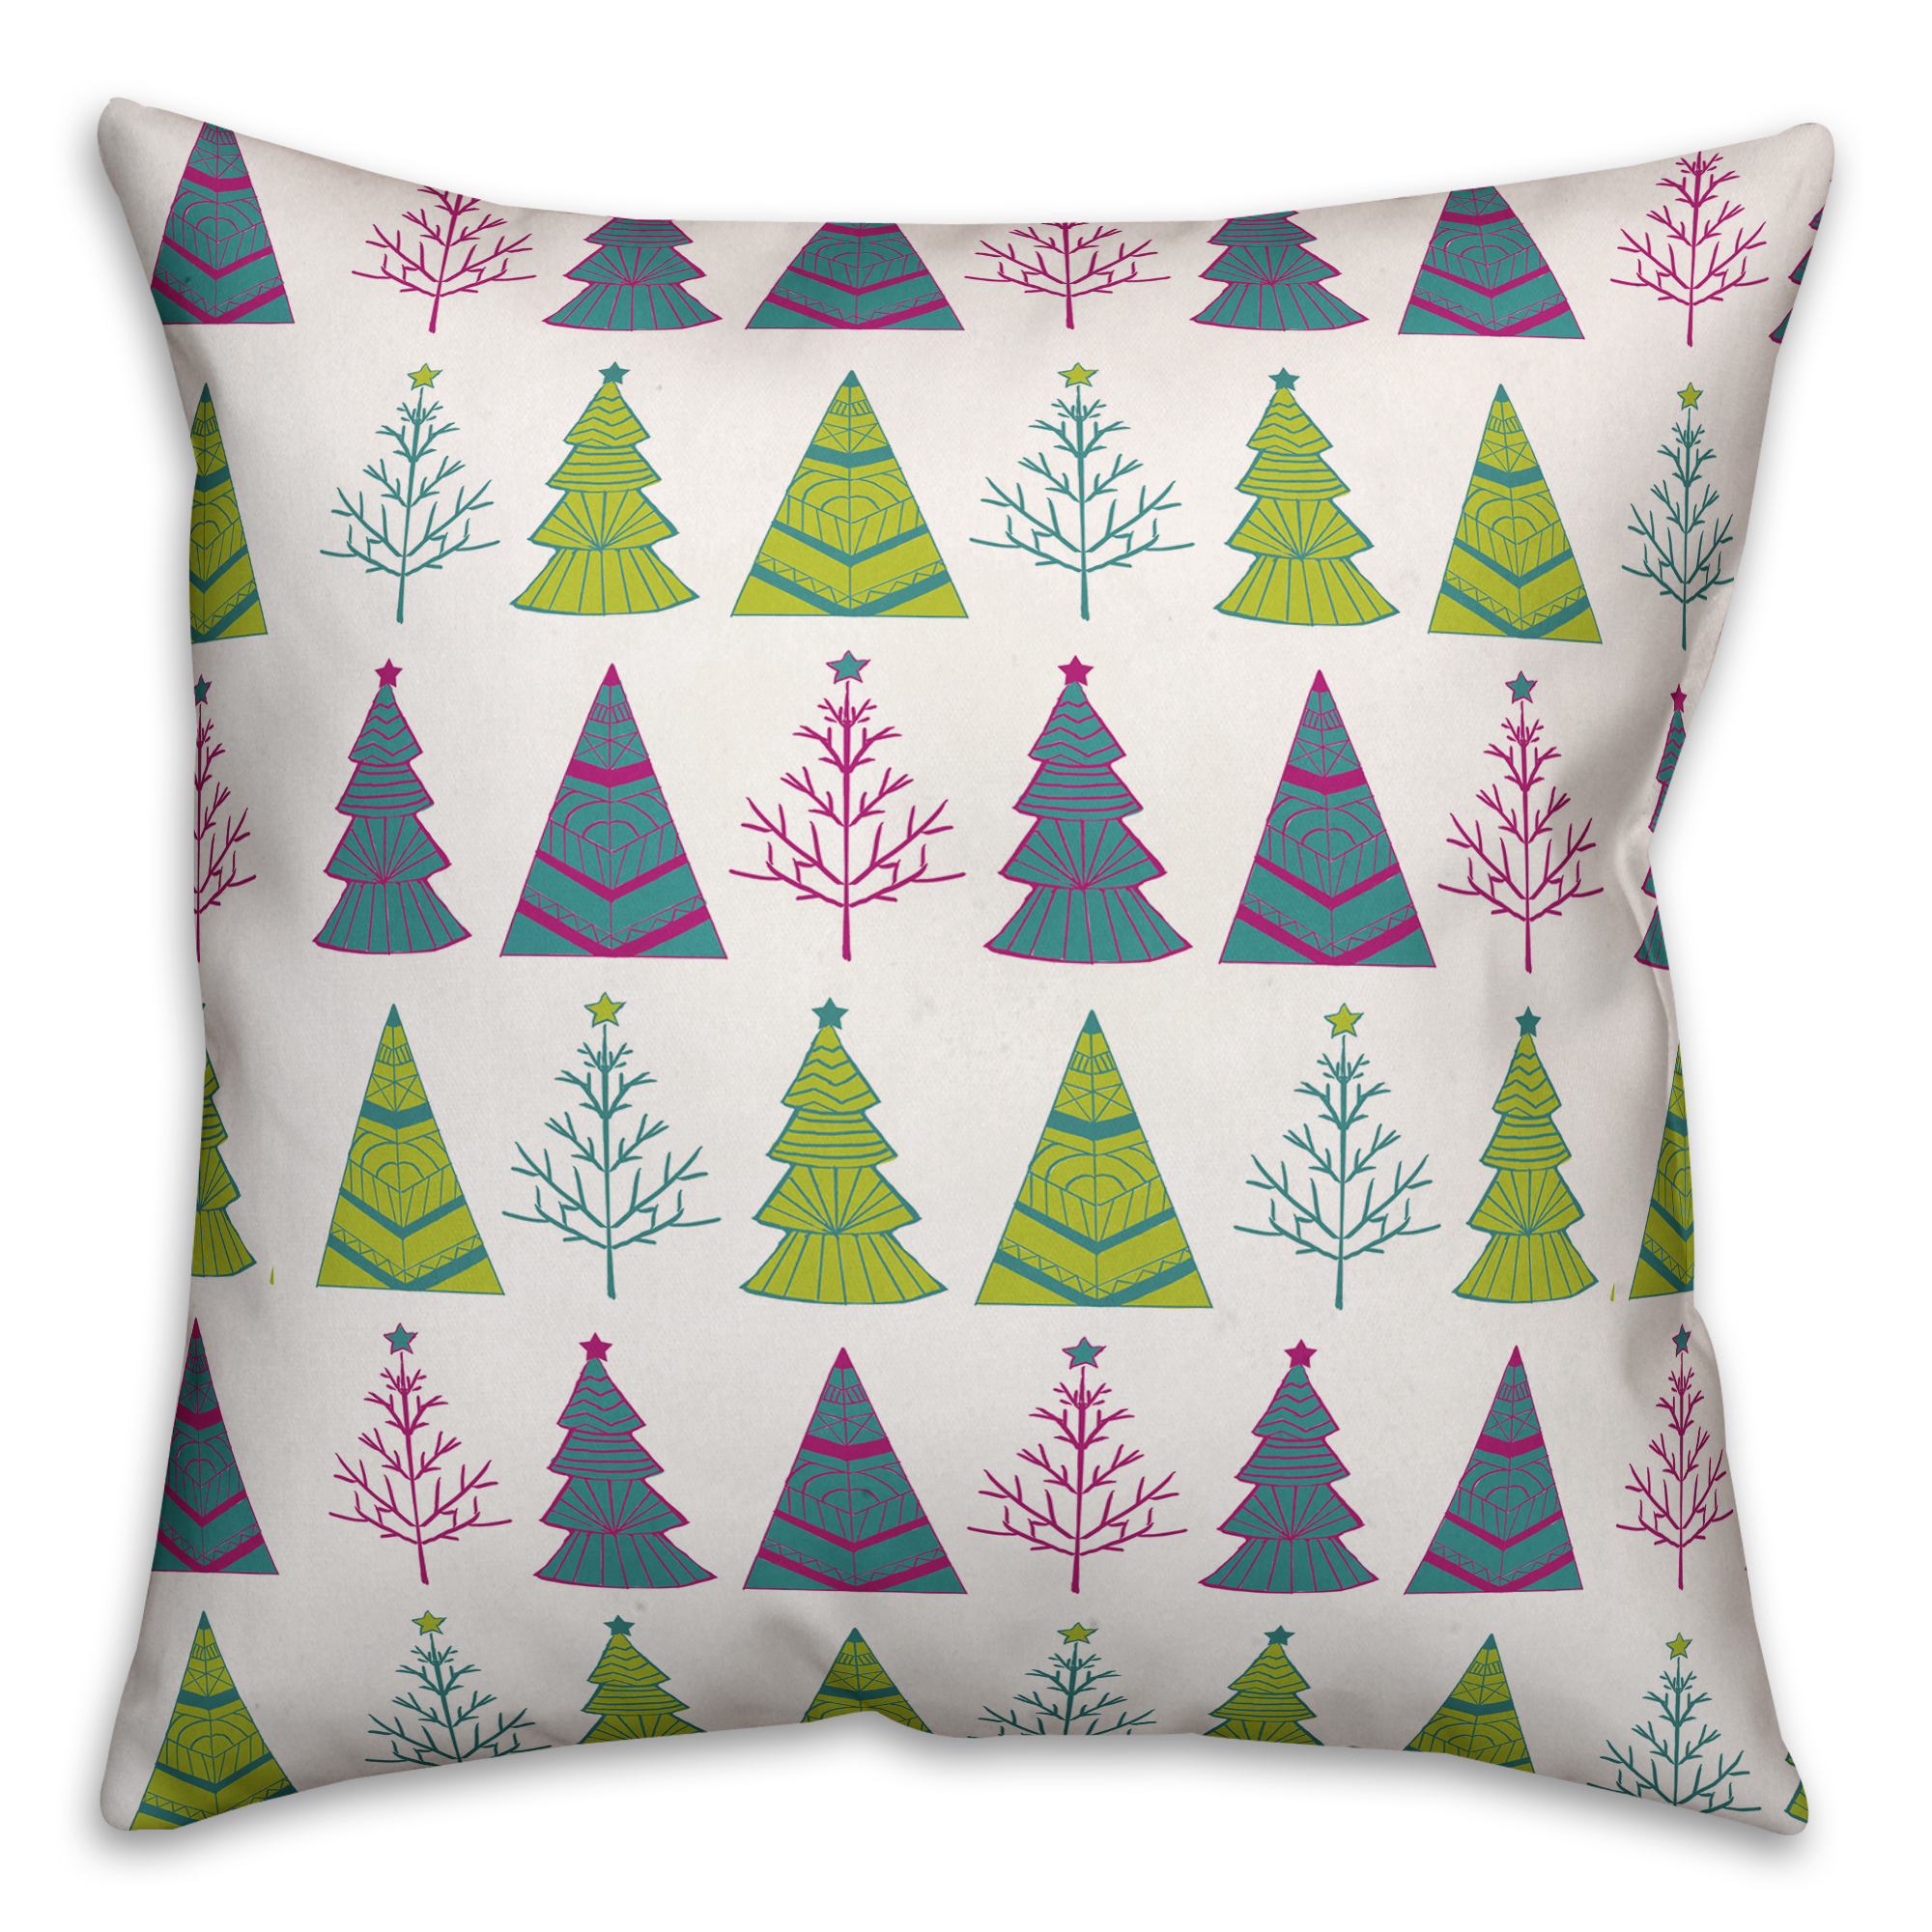 Christmas Tree Pattern 16x16 Spun Poly Pillow